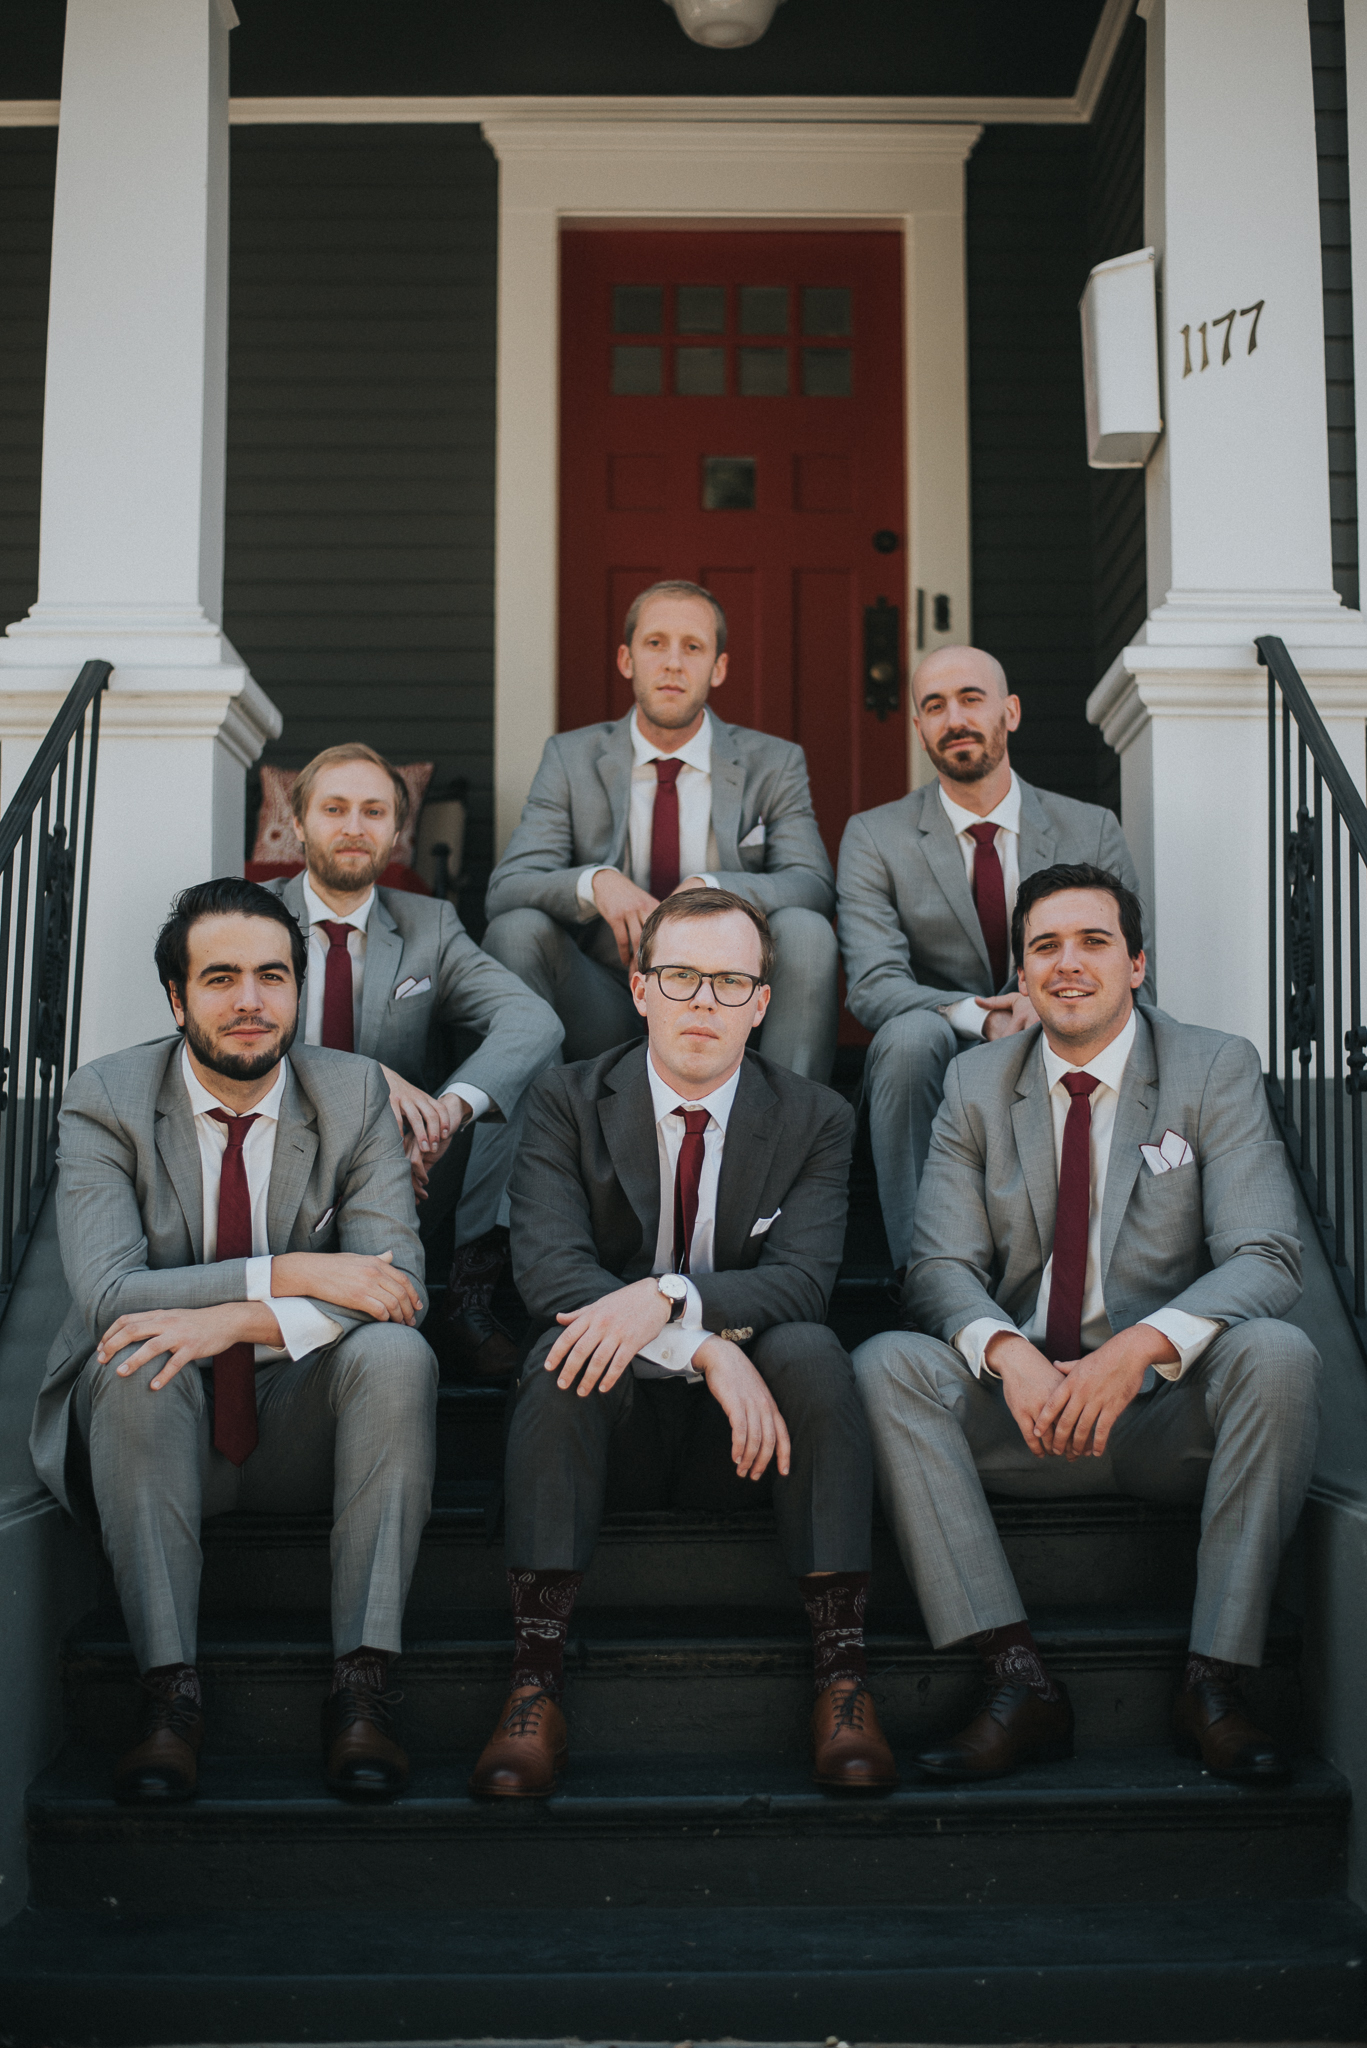 Groom Party Details By Dia Photography